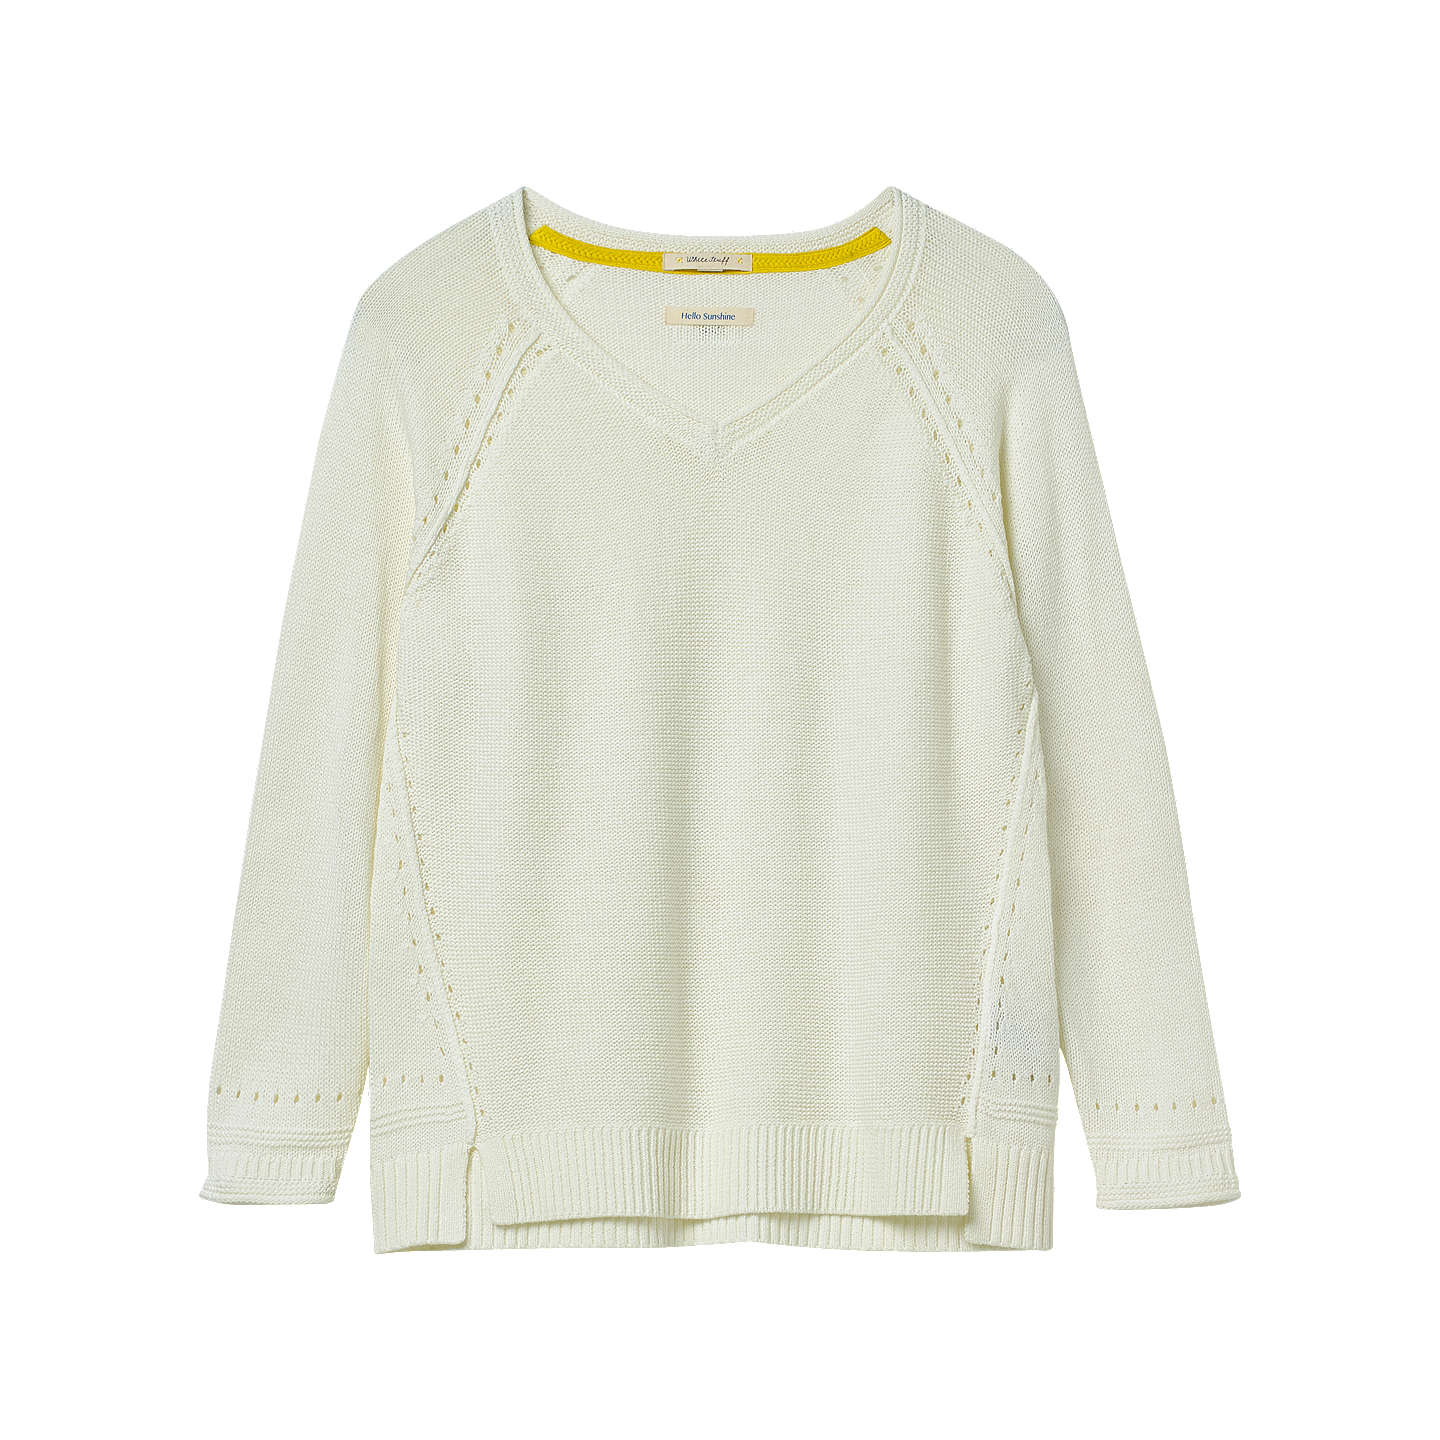 BuyWhite Stuff Hessian Long Sleeve Jumper, Magnolia Cream, 6 Online at johnlewis.com